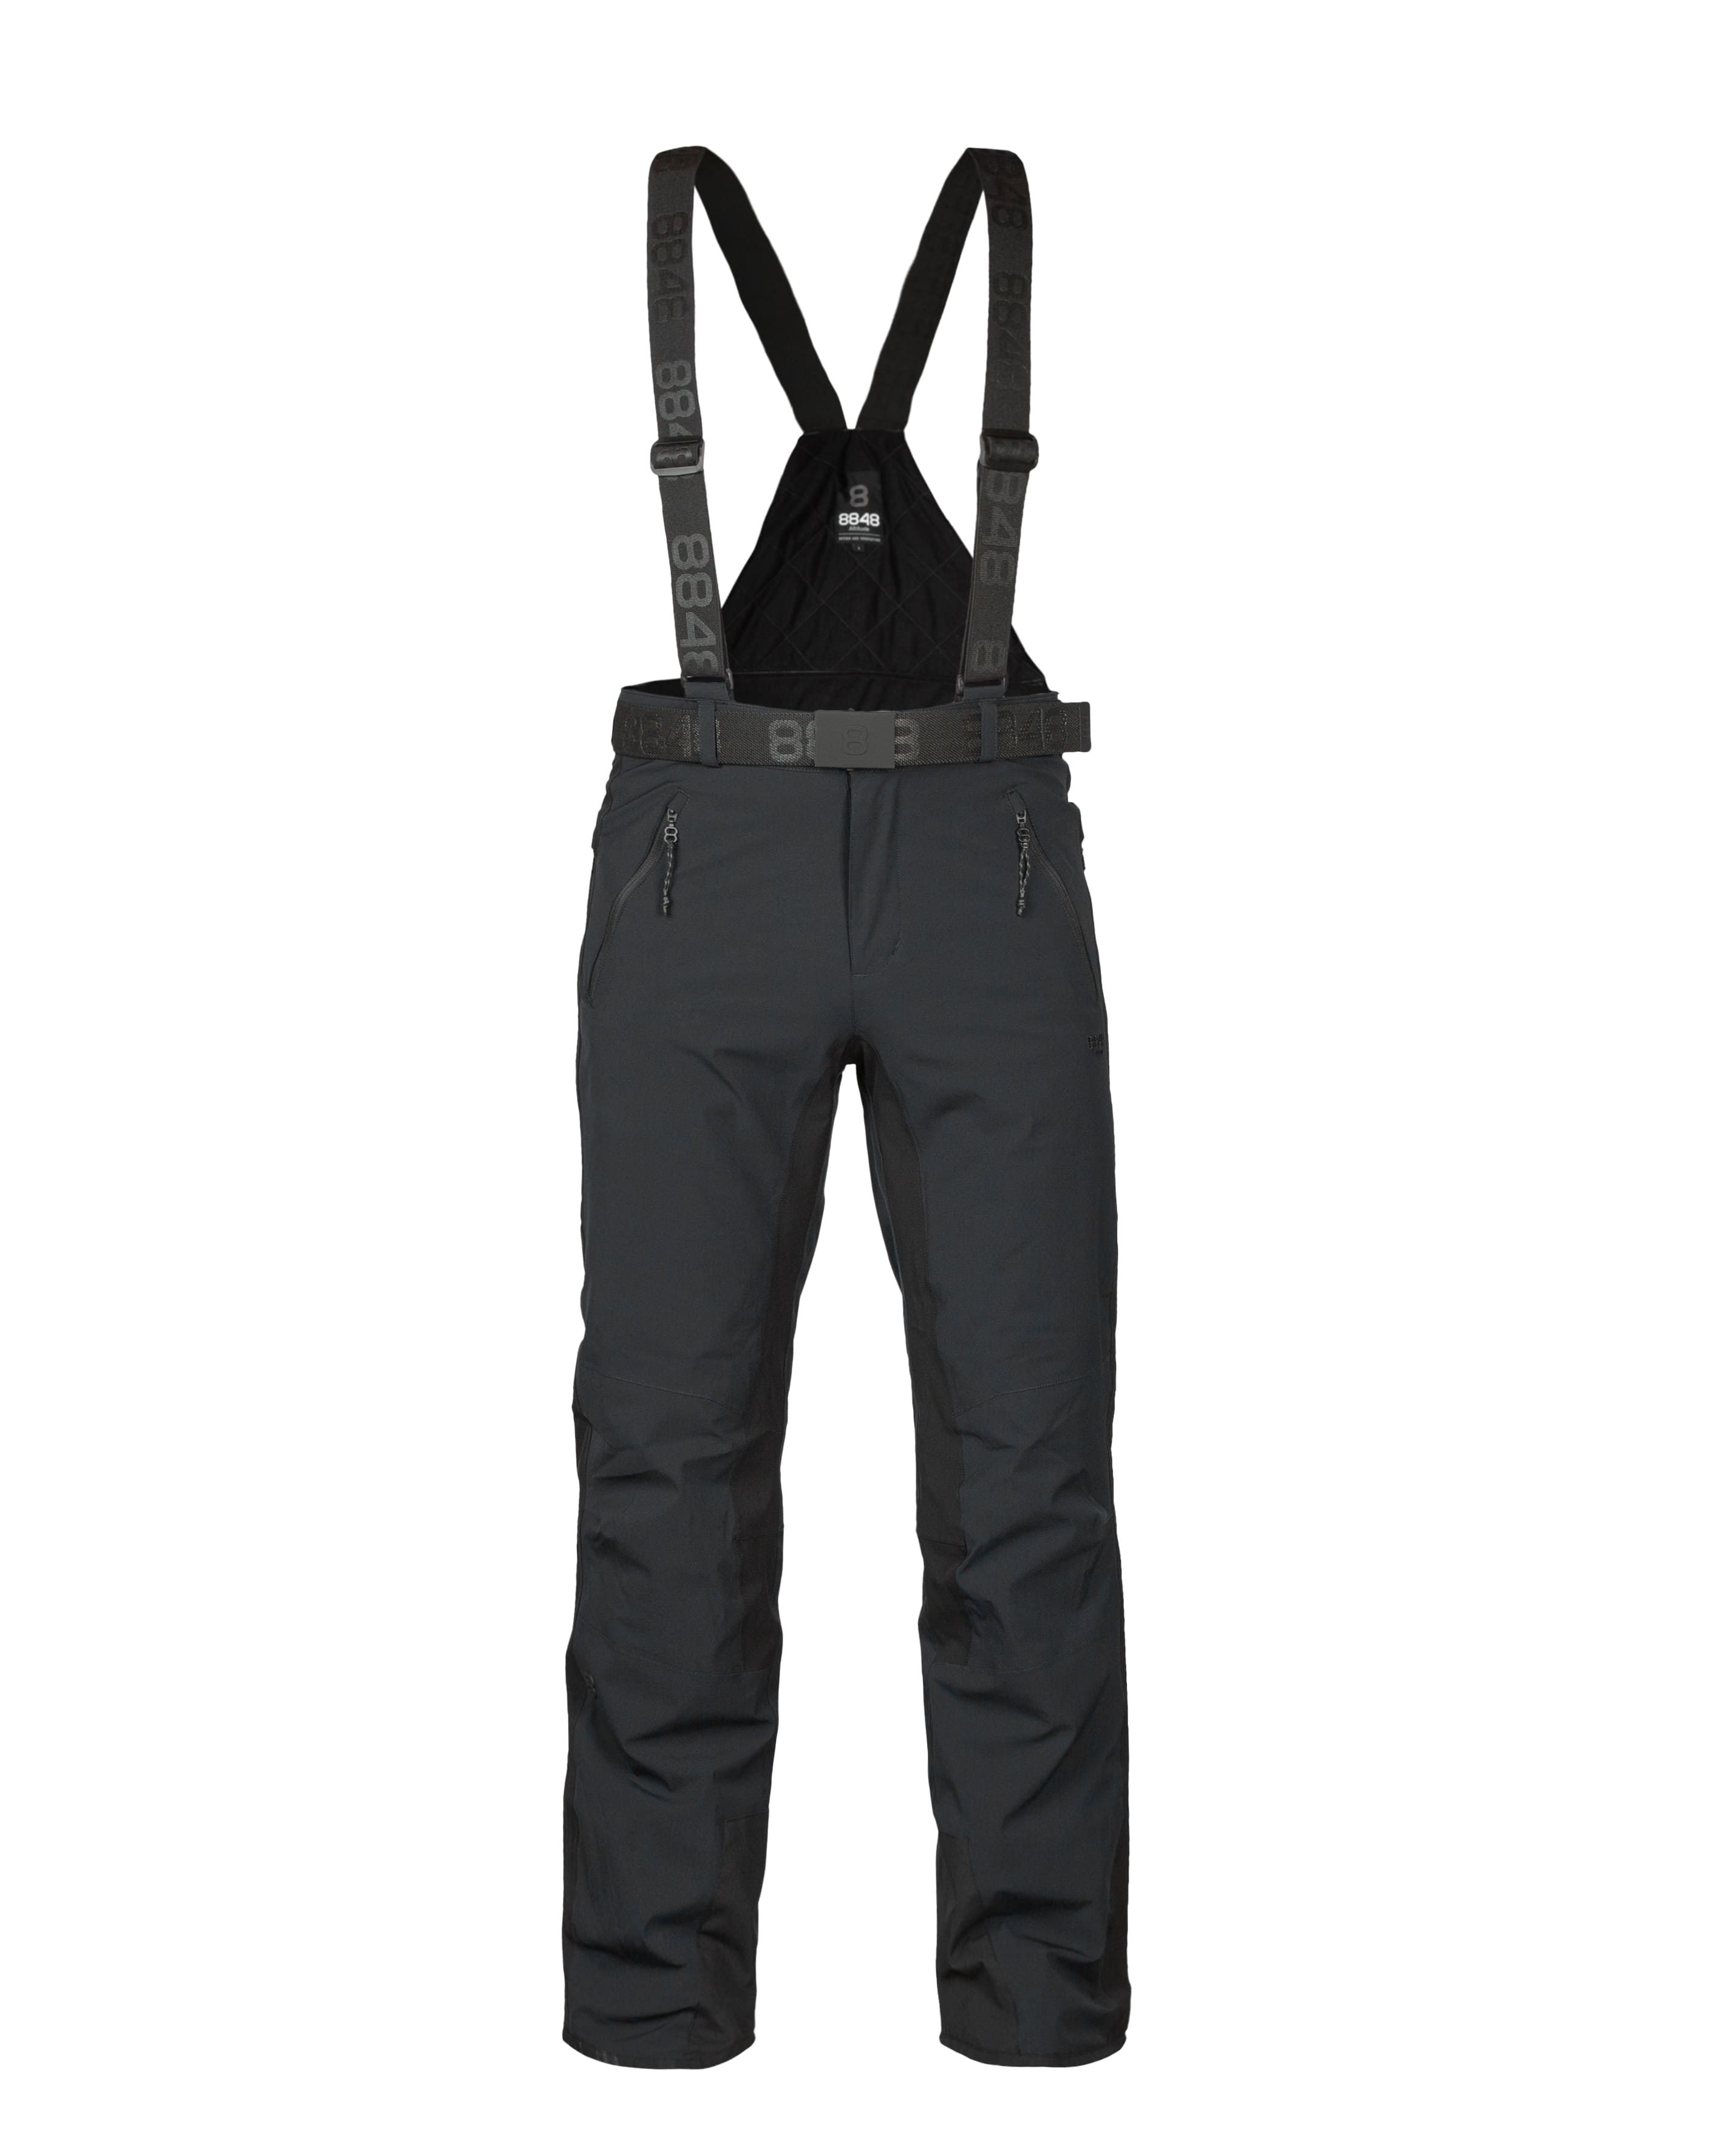 8848 Altitude M Rothorn 2_0 Pant 2022